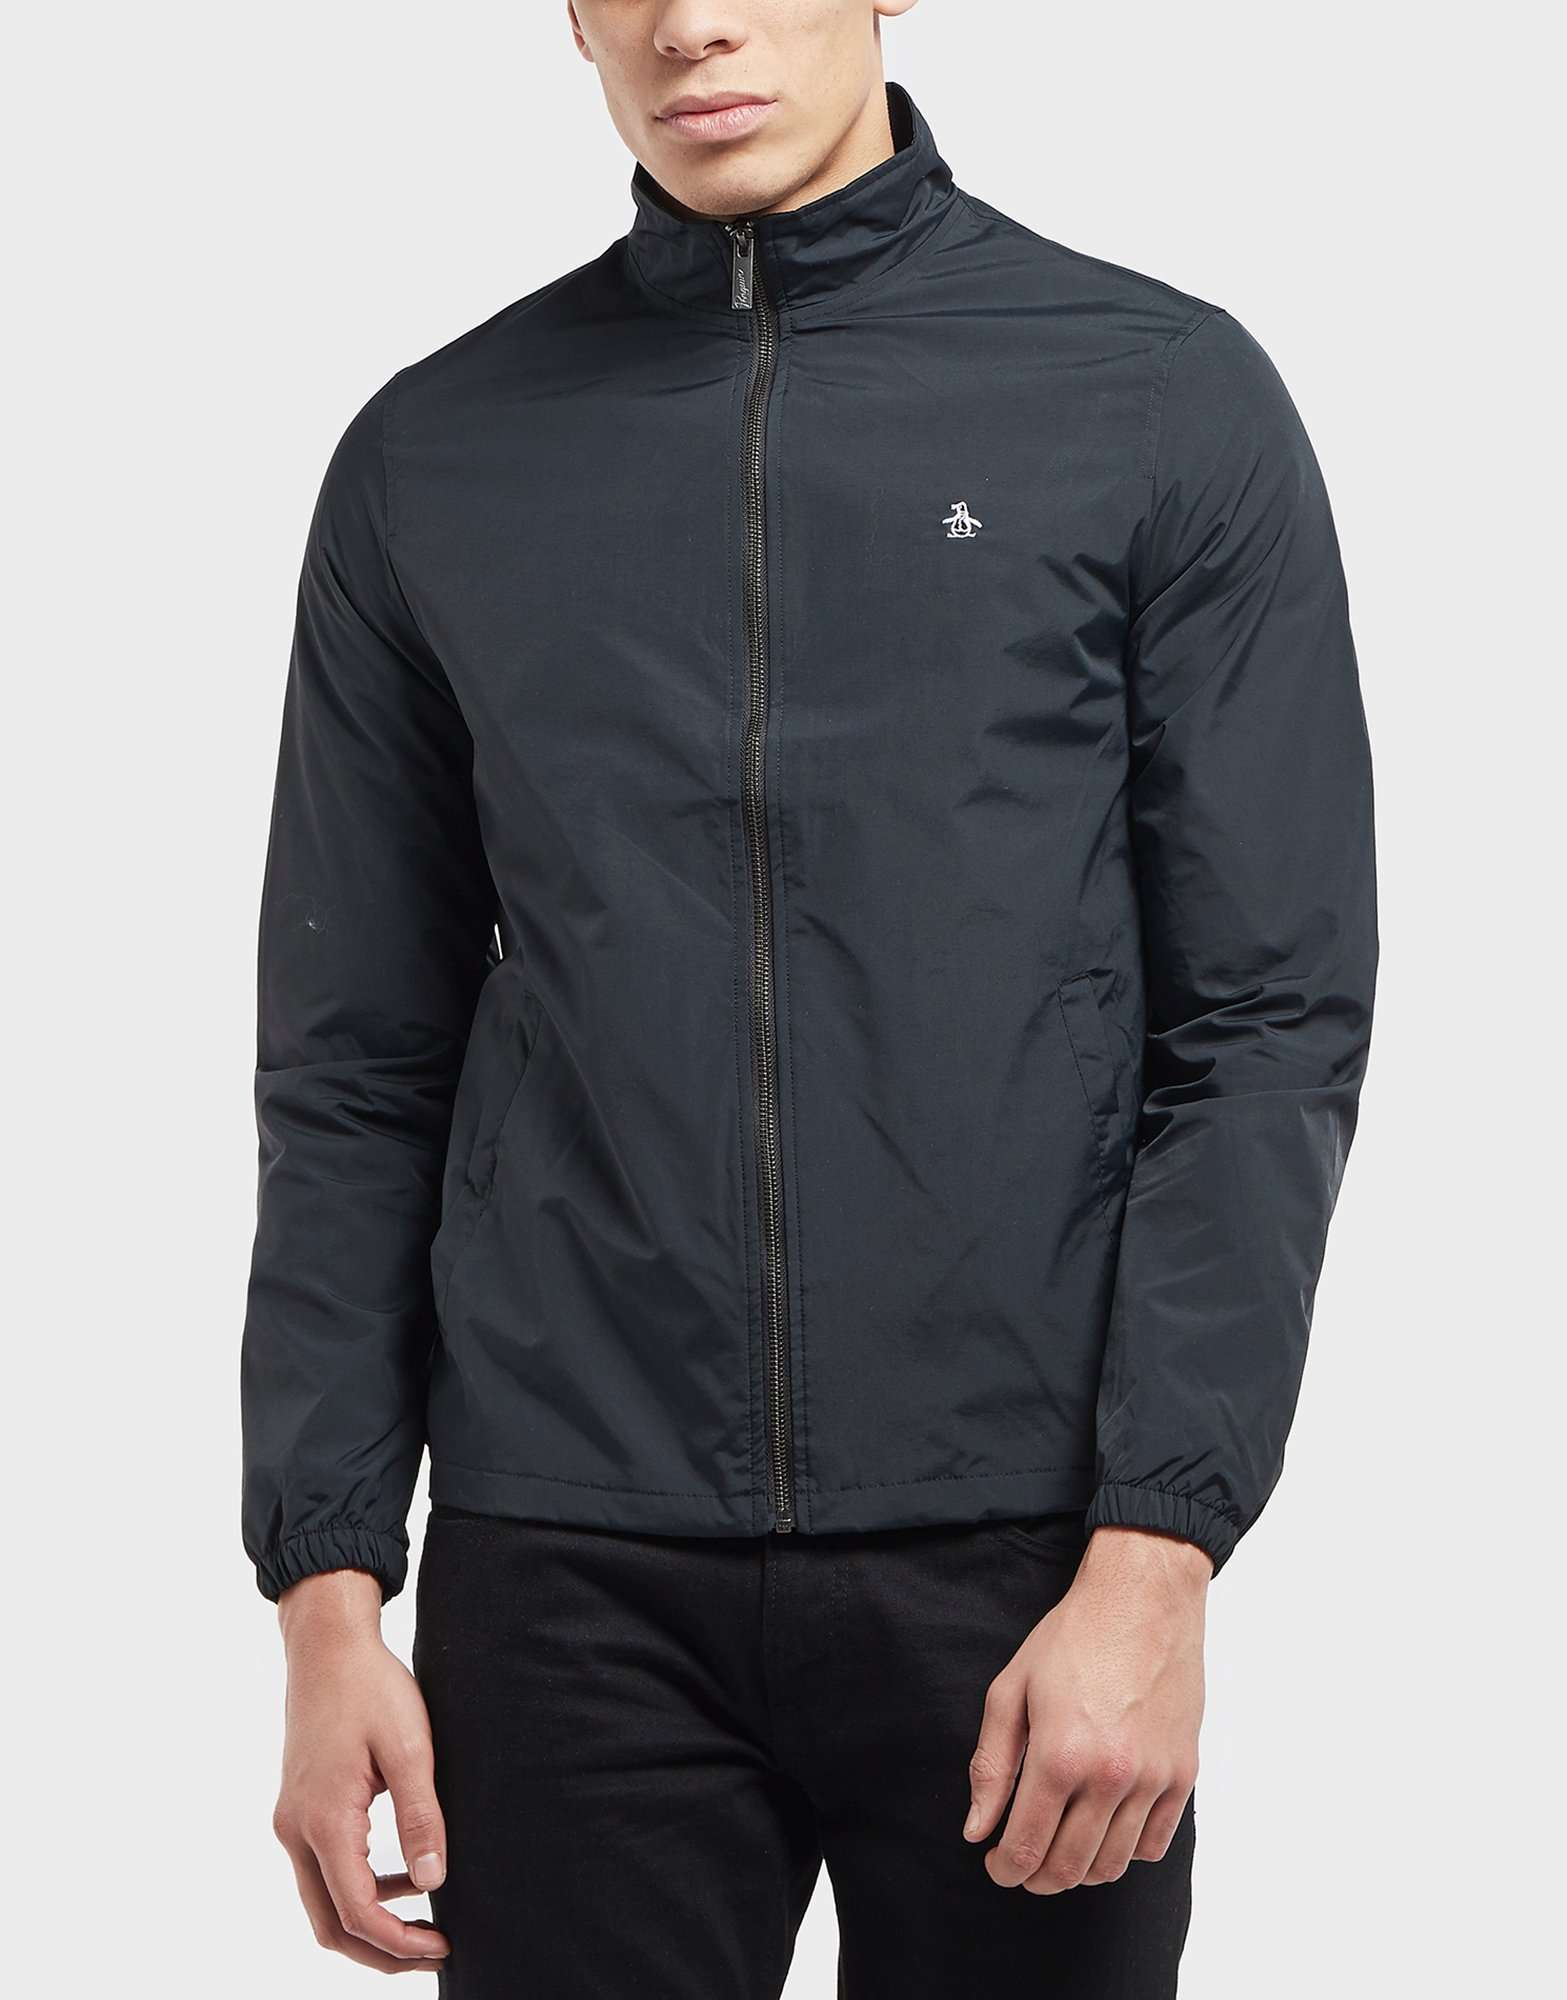 Original Penguin Lightweight Summer Jacket - Online Exclusive